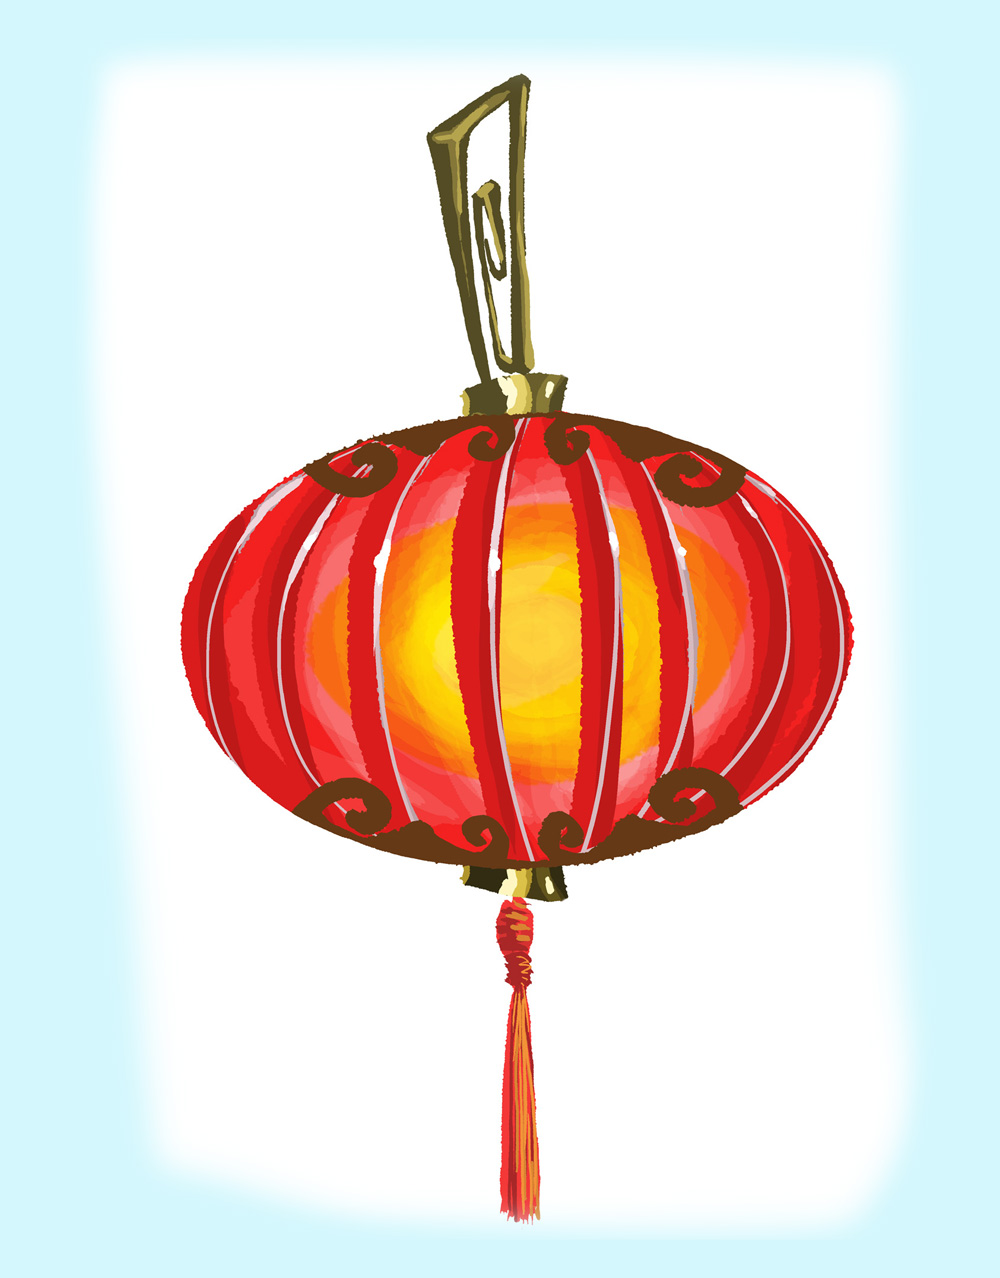 Latern clipart red chinese #7